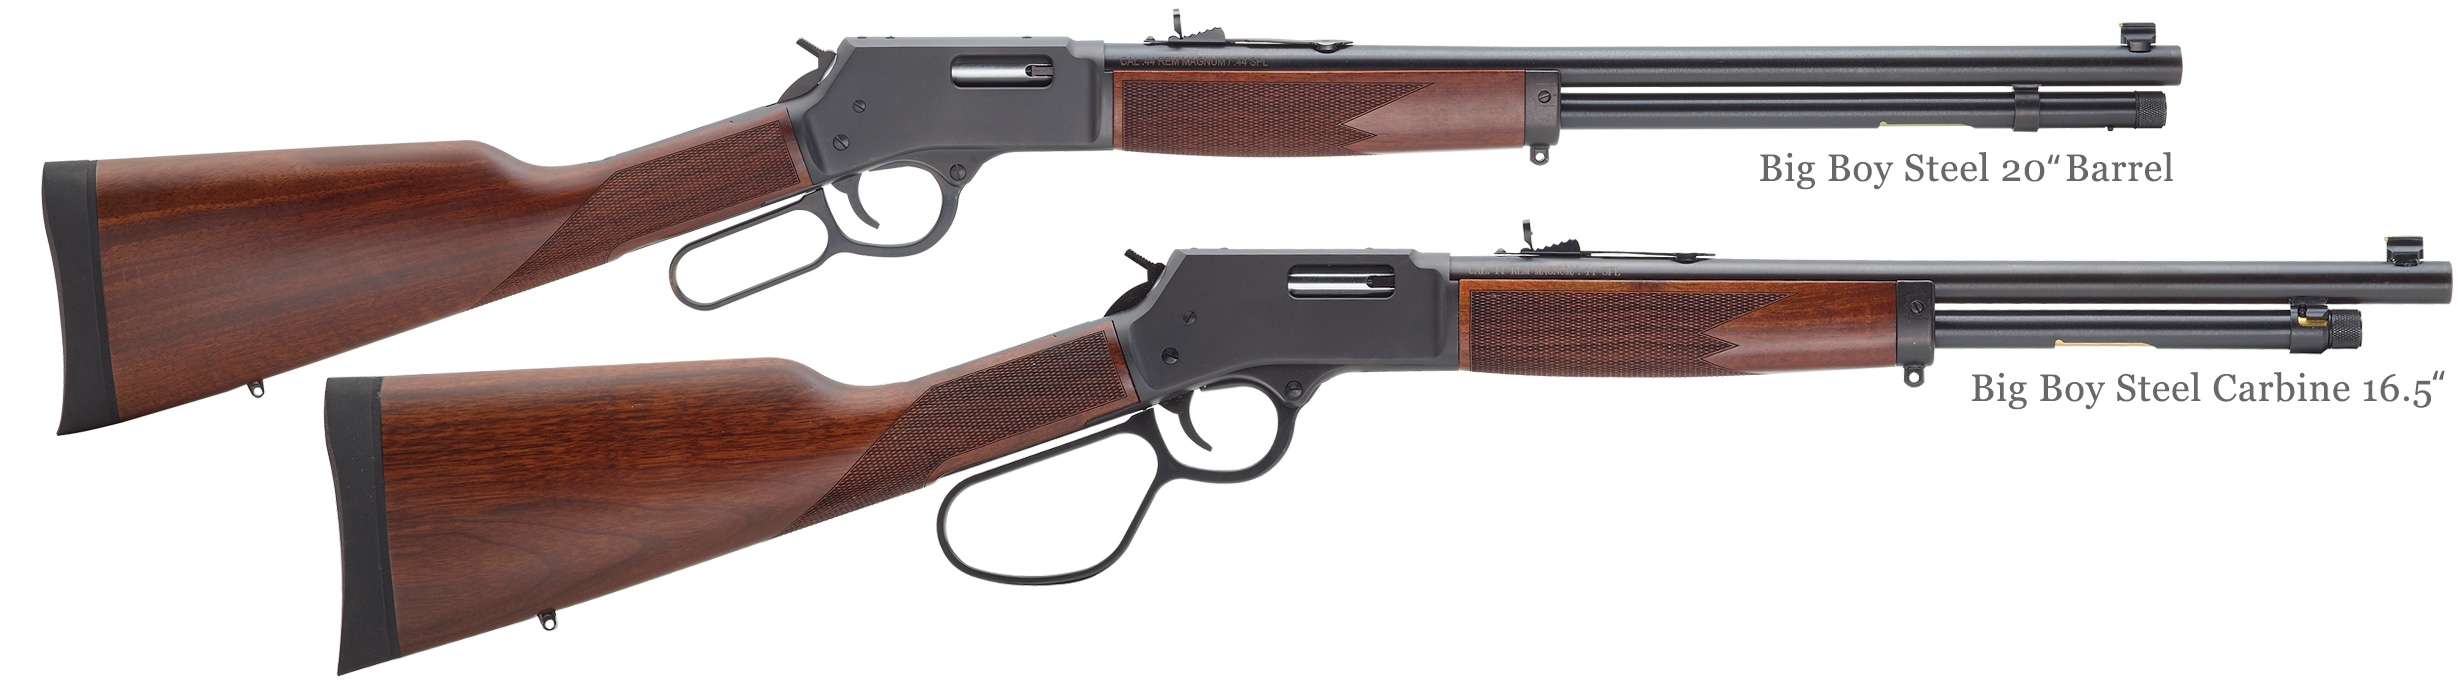 Review: Henry Big Boy Steel Carbine in .357